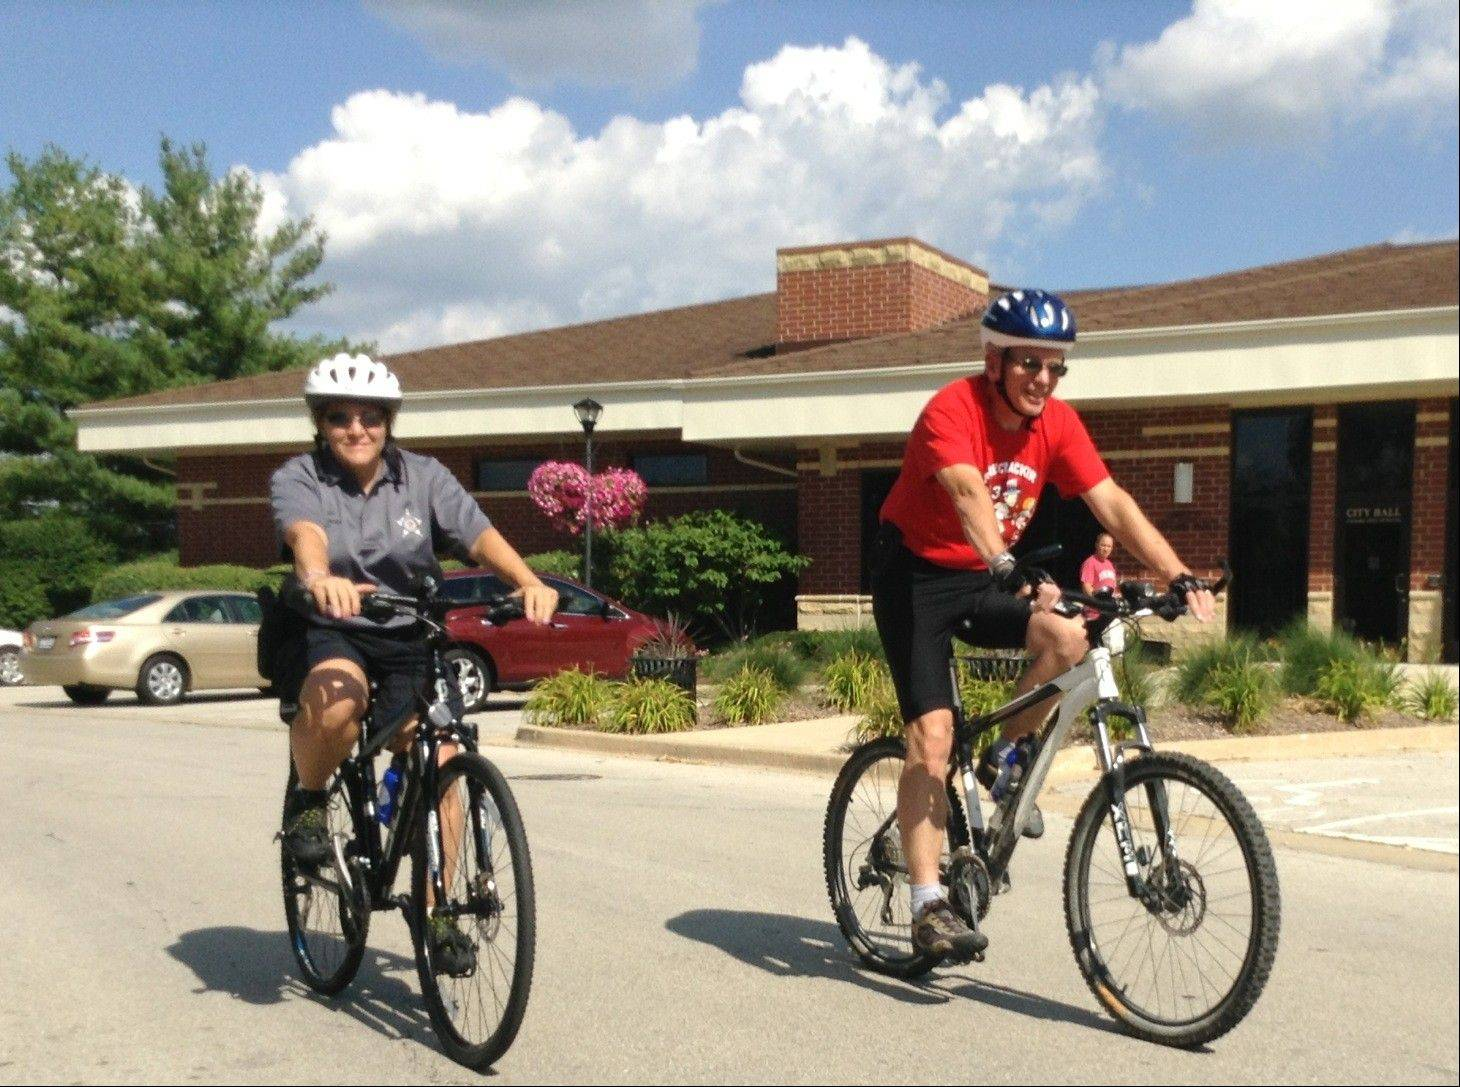 Warrenville Mayor David Brummel, right, and police officer Teresa McBride set off on the city's first bicycle patrol in nearly a decade.